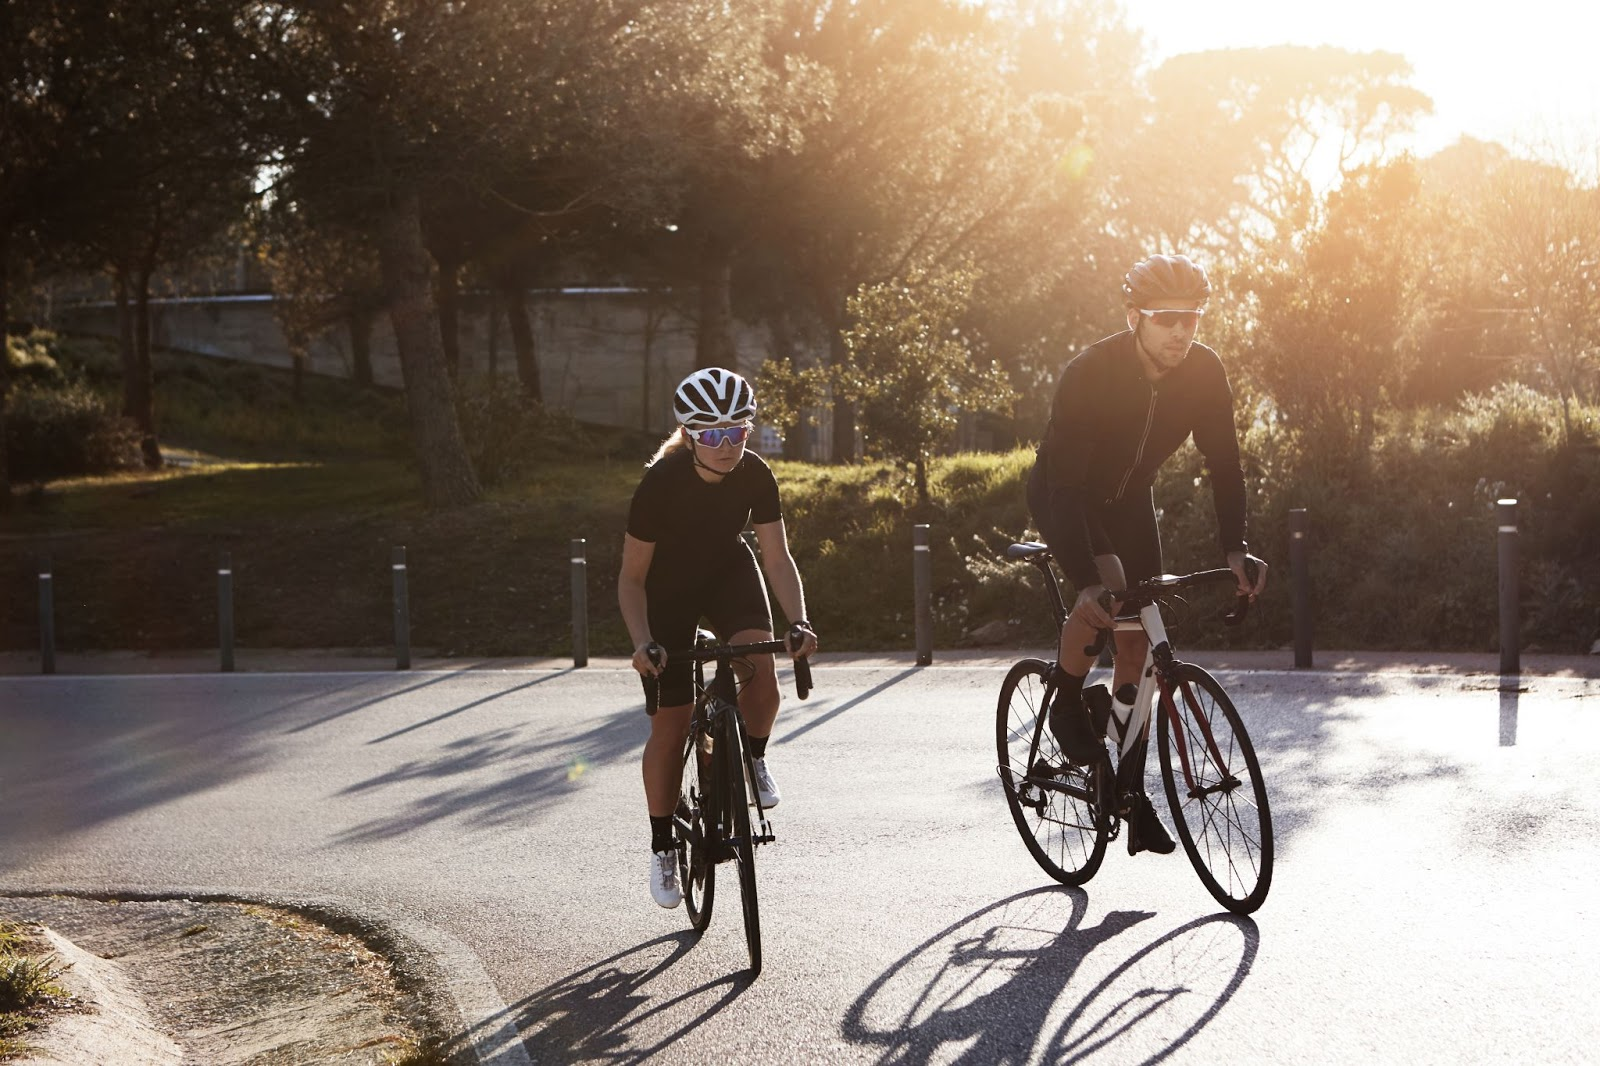 Two people ride bikes in the morning